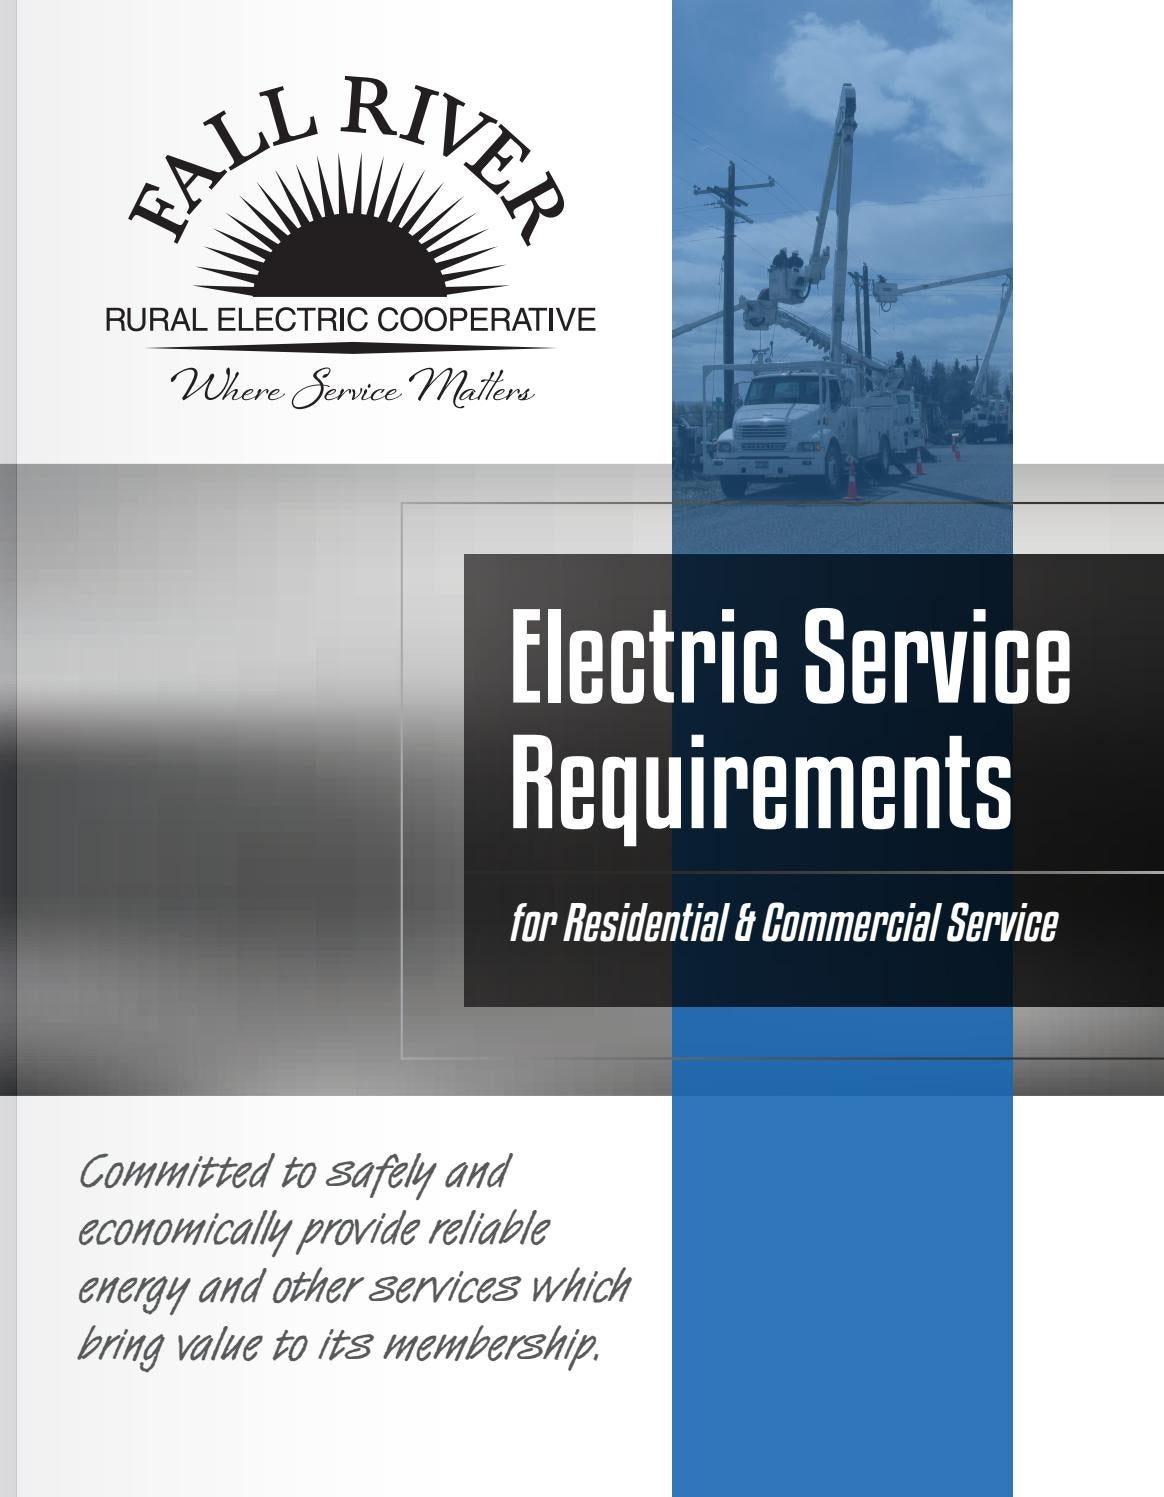 Fall River Rural Electric Cooperative Electric Service Requirments